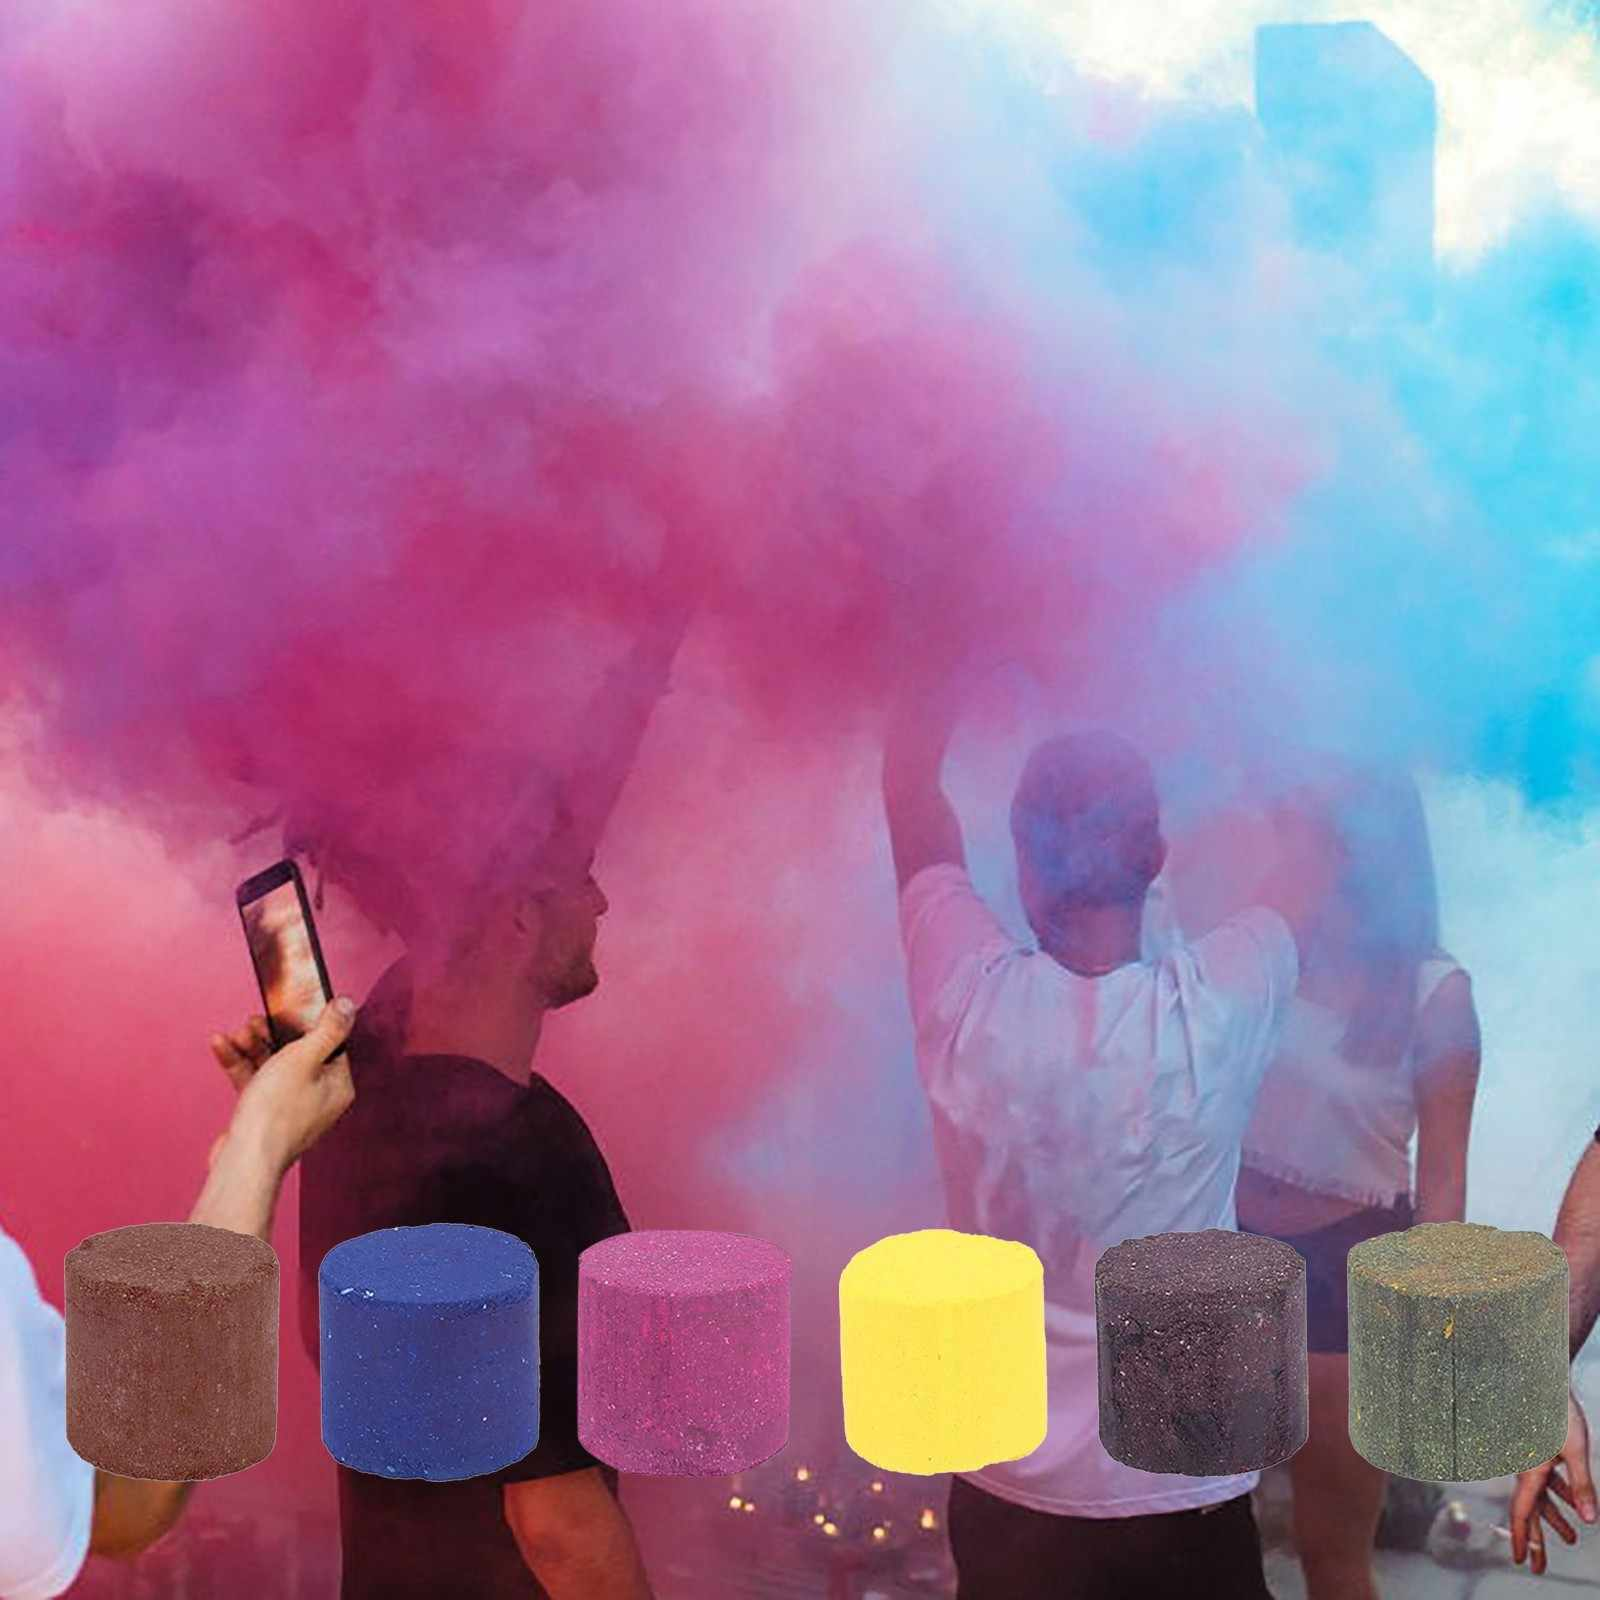 Color effect smoke bomb color photography background colored chalk dust color smoke cake Christmas party event decoration background photo video shooting studio props photography toy wedding